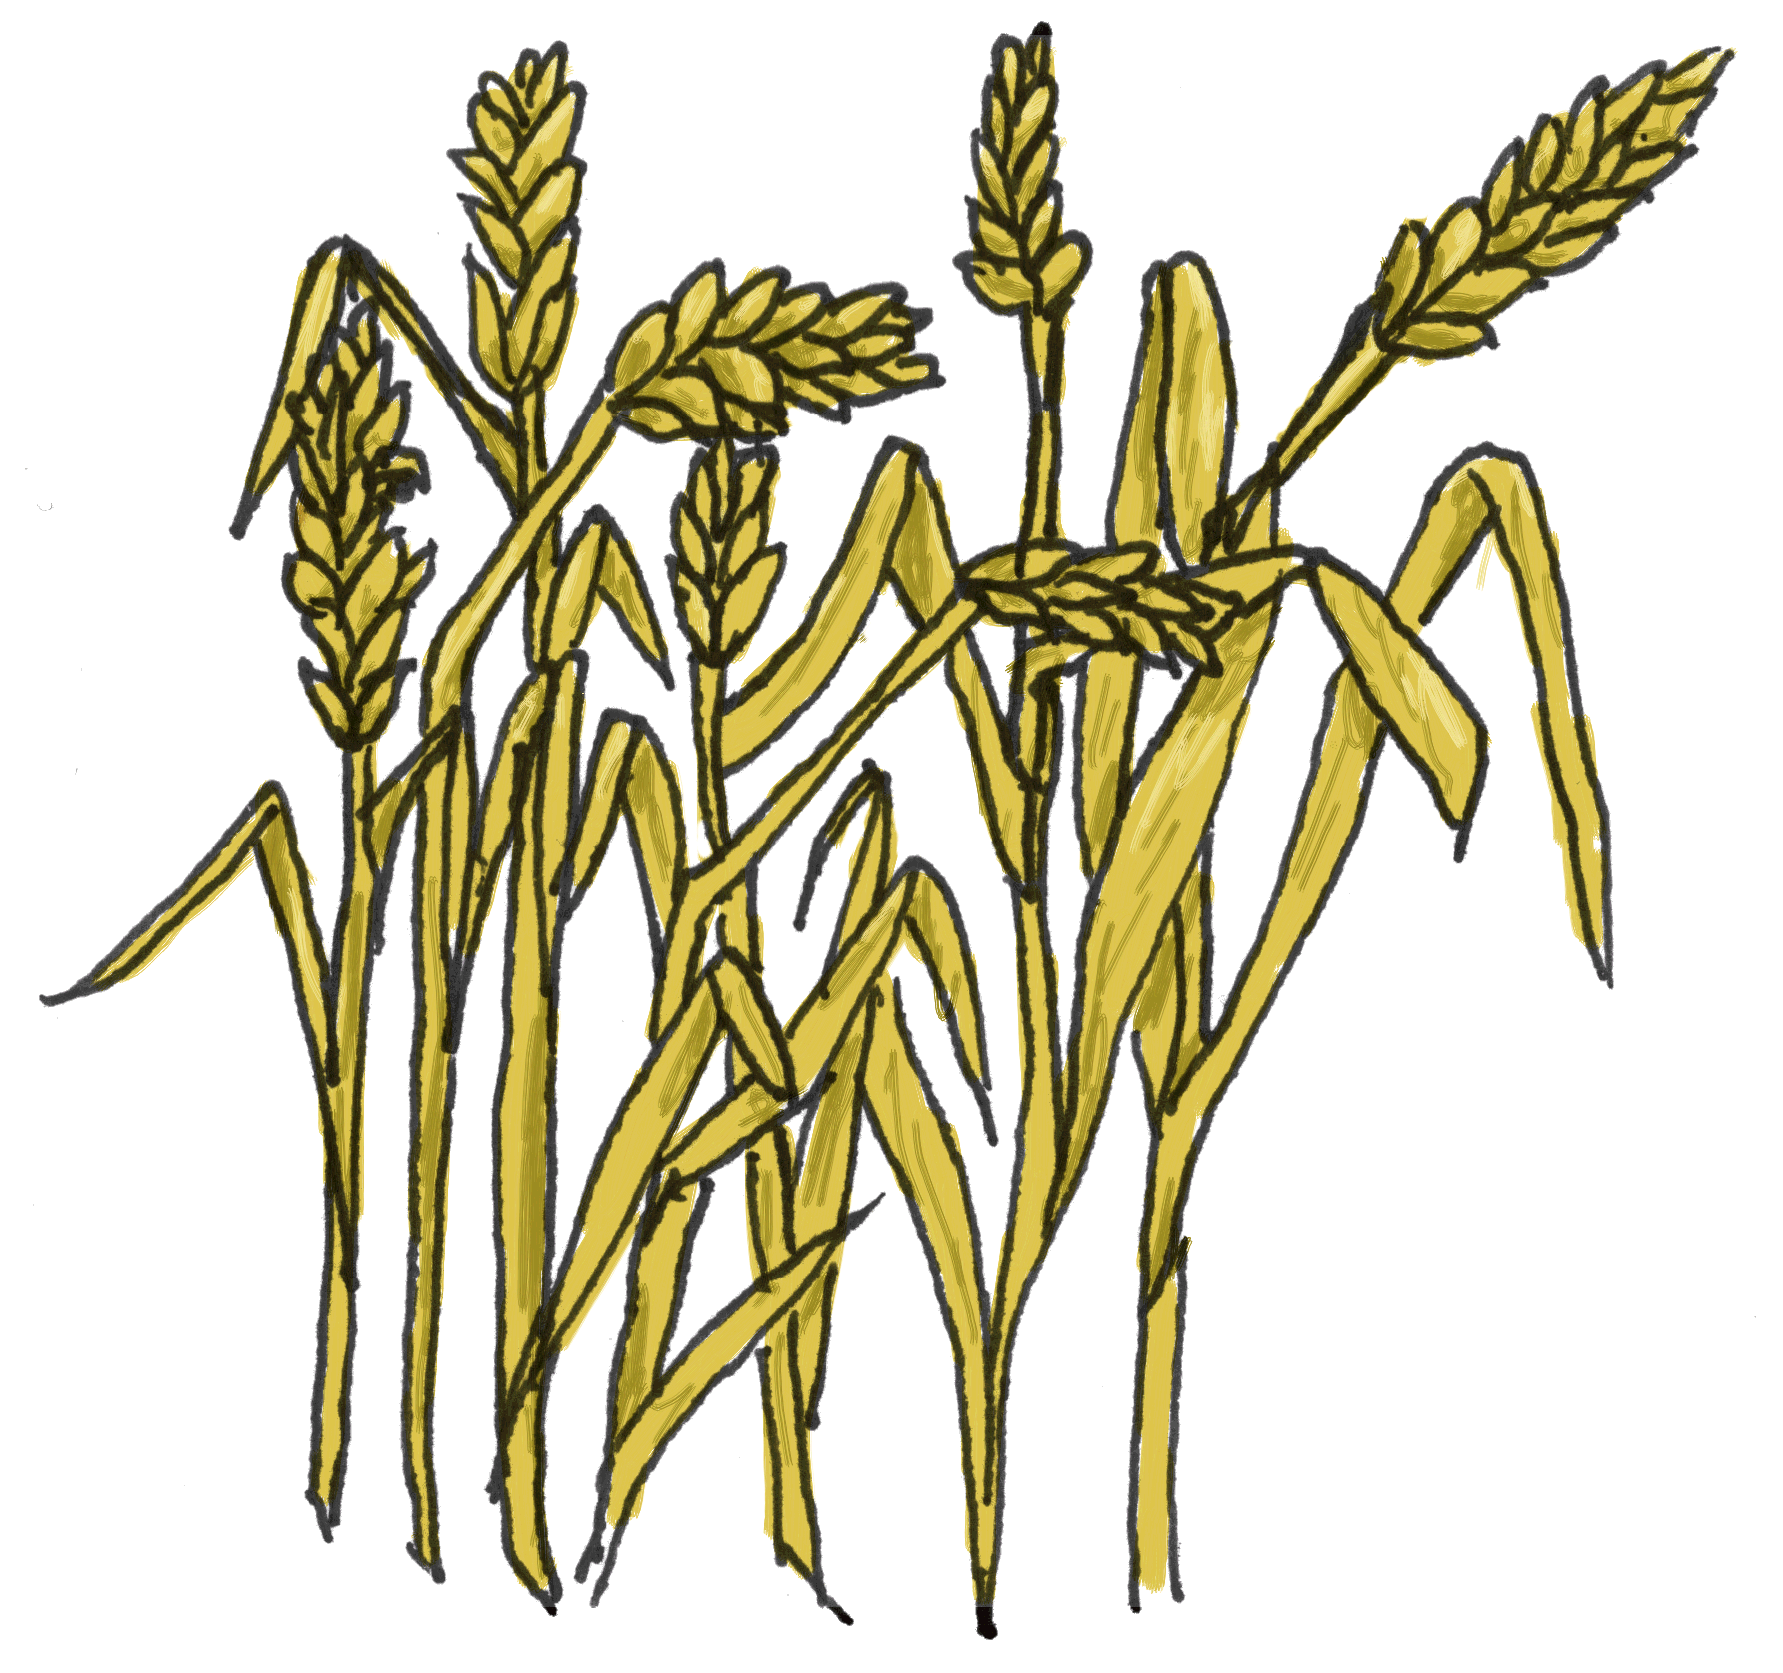 Clipart corn wheat free. Cornfield drawing barley field clip stock